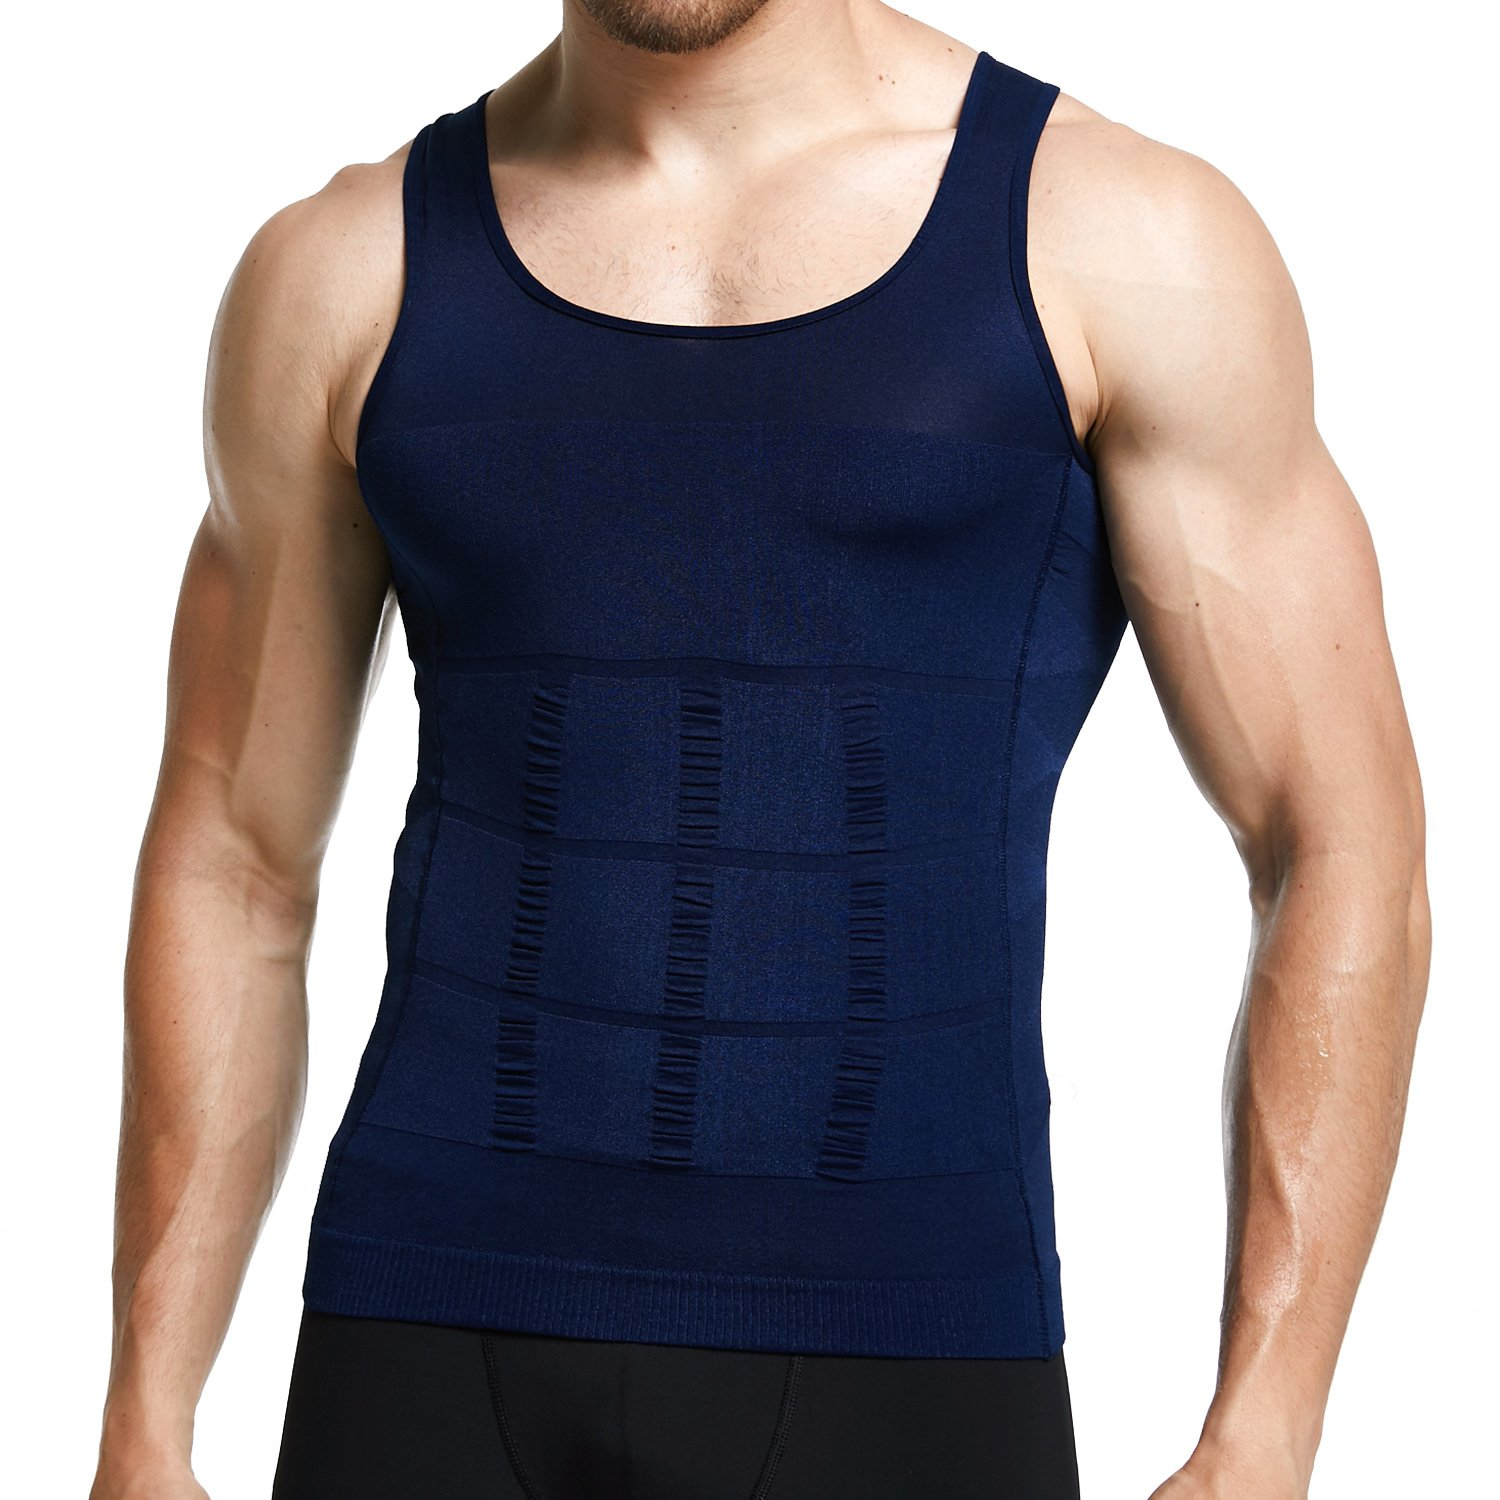 GKVK Mens Slimming Body Shaper Vest Shirt Abs Abdomen Slim,XL(chest size 106cm-110cm/42inches-44inches),Blue